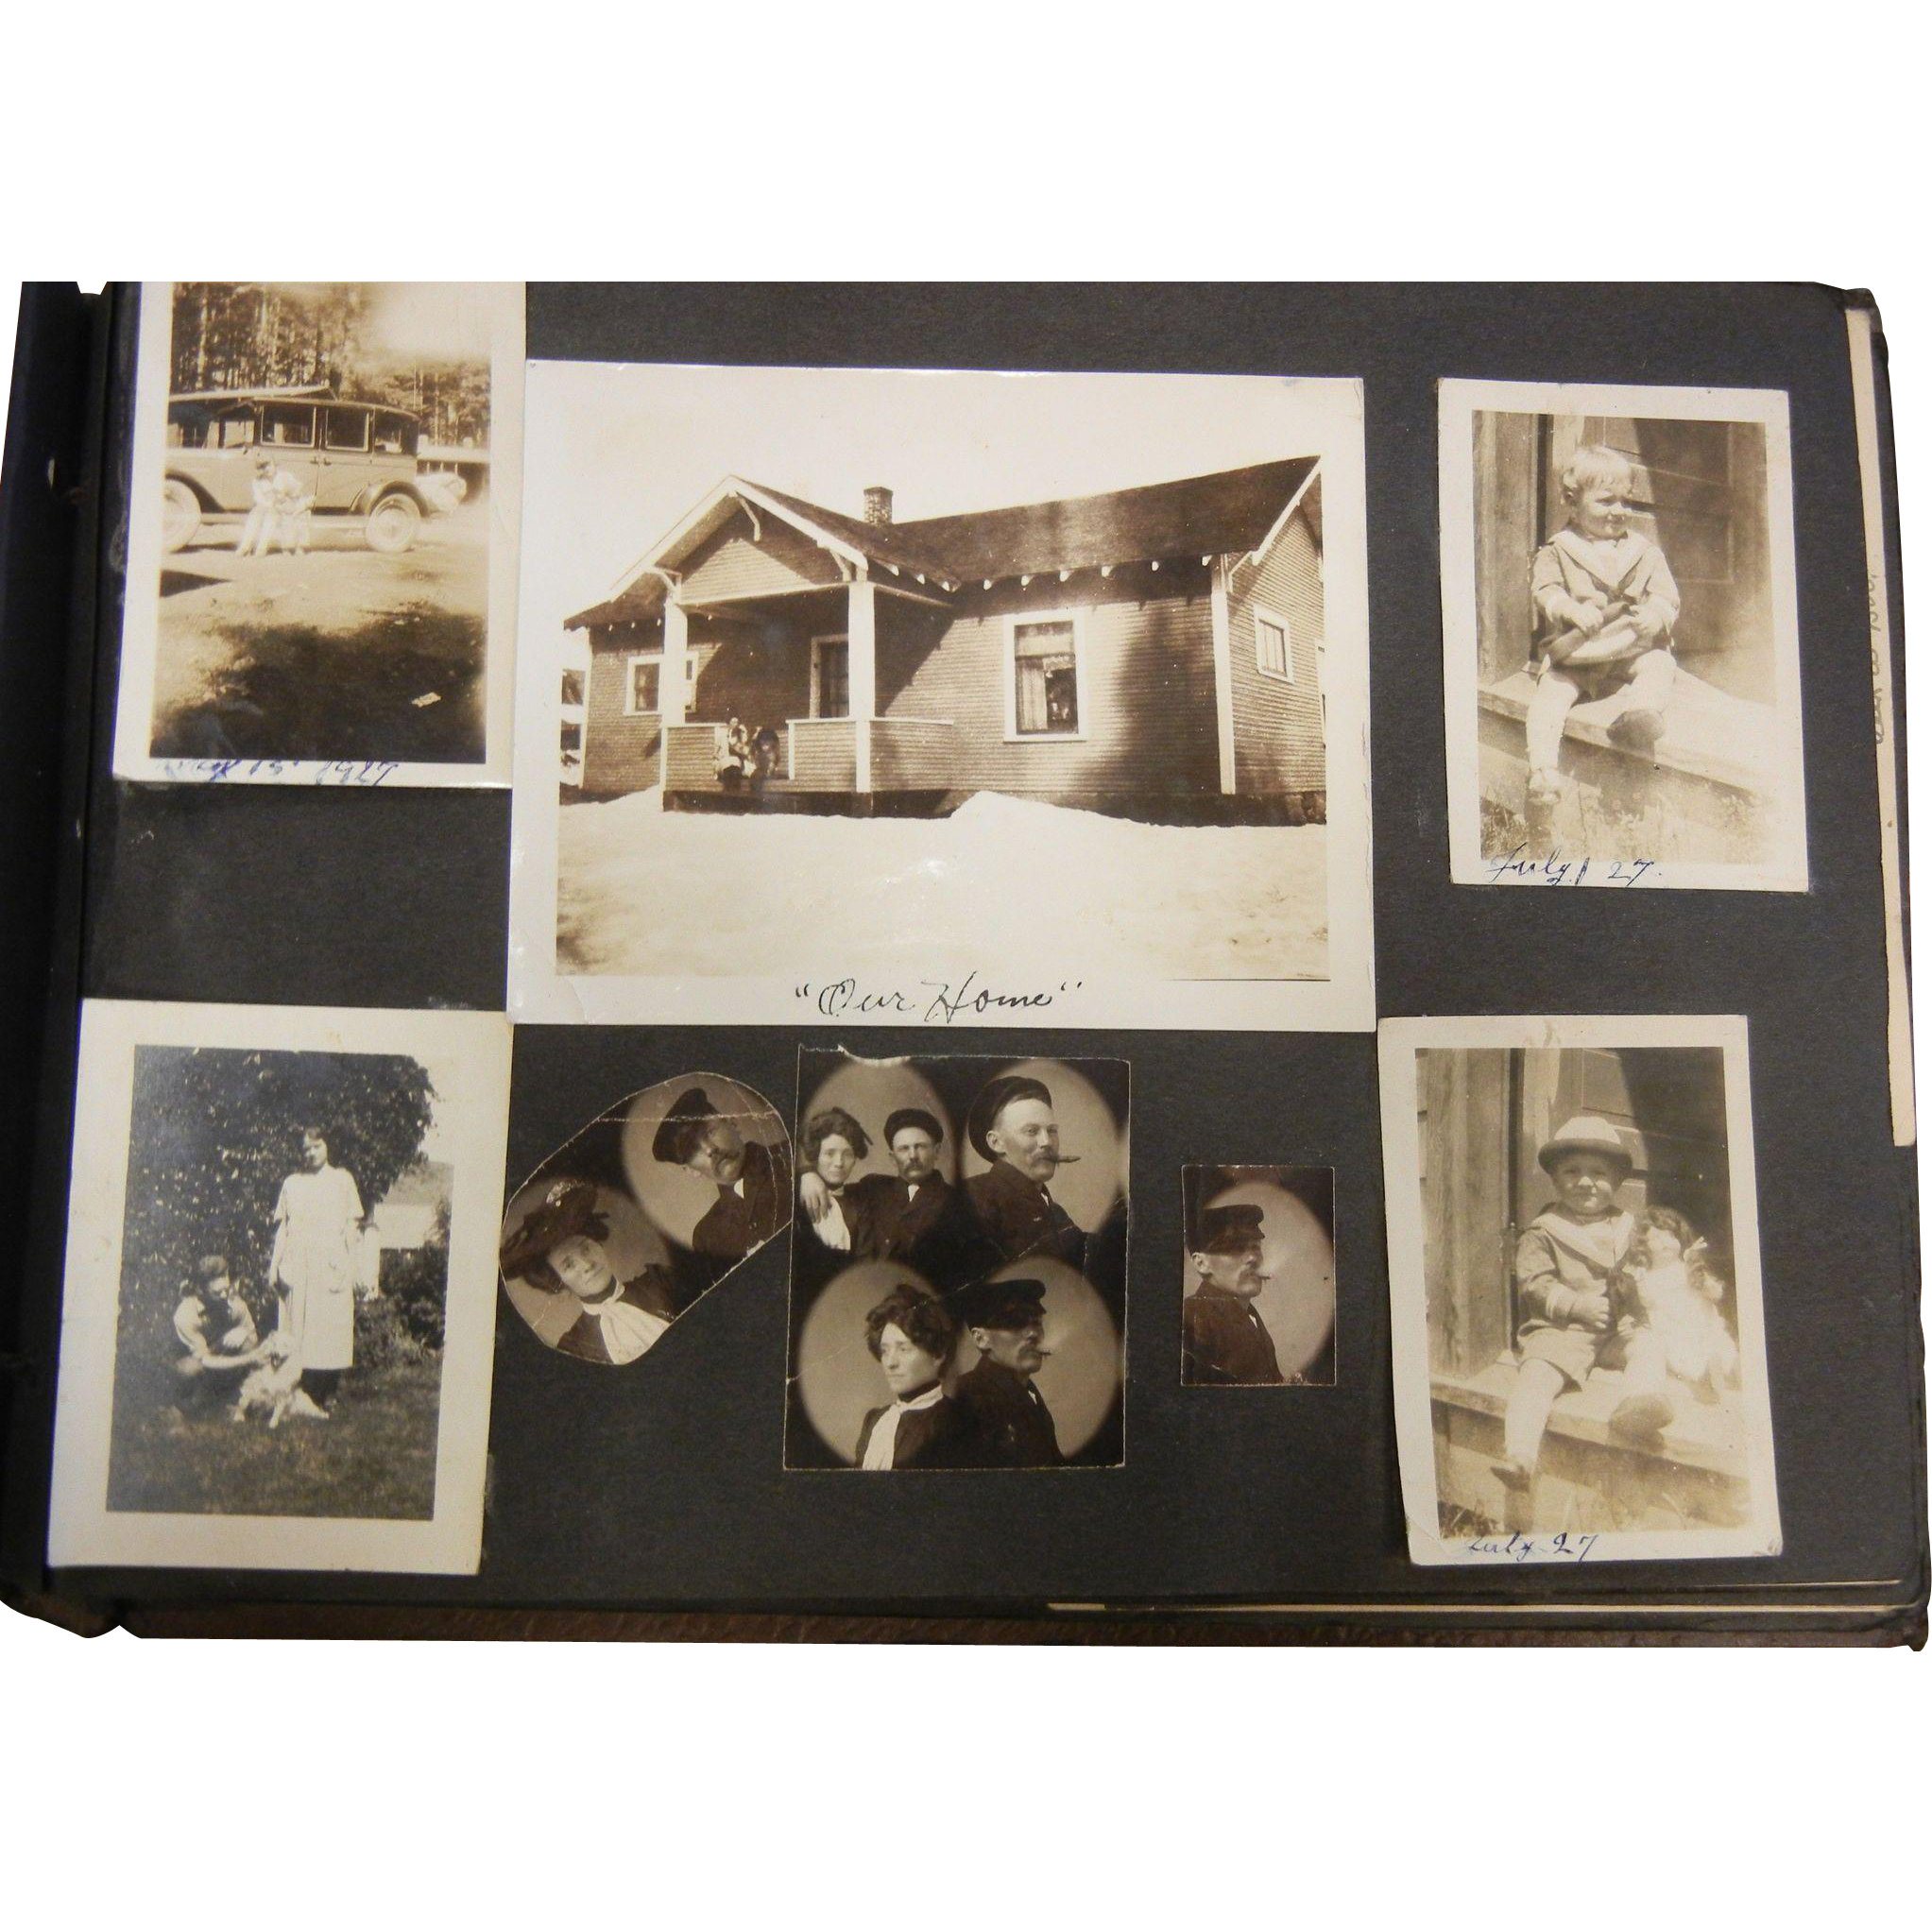 Old Photograph Album w/ Various Photos Dated 1902-1939 - 239 PHOTOS AS FOUND